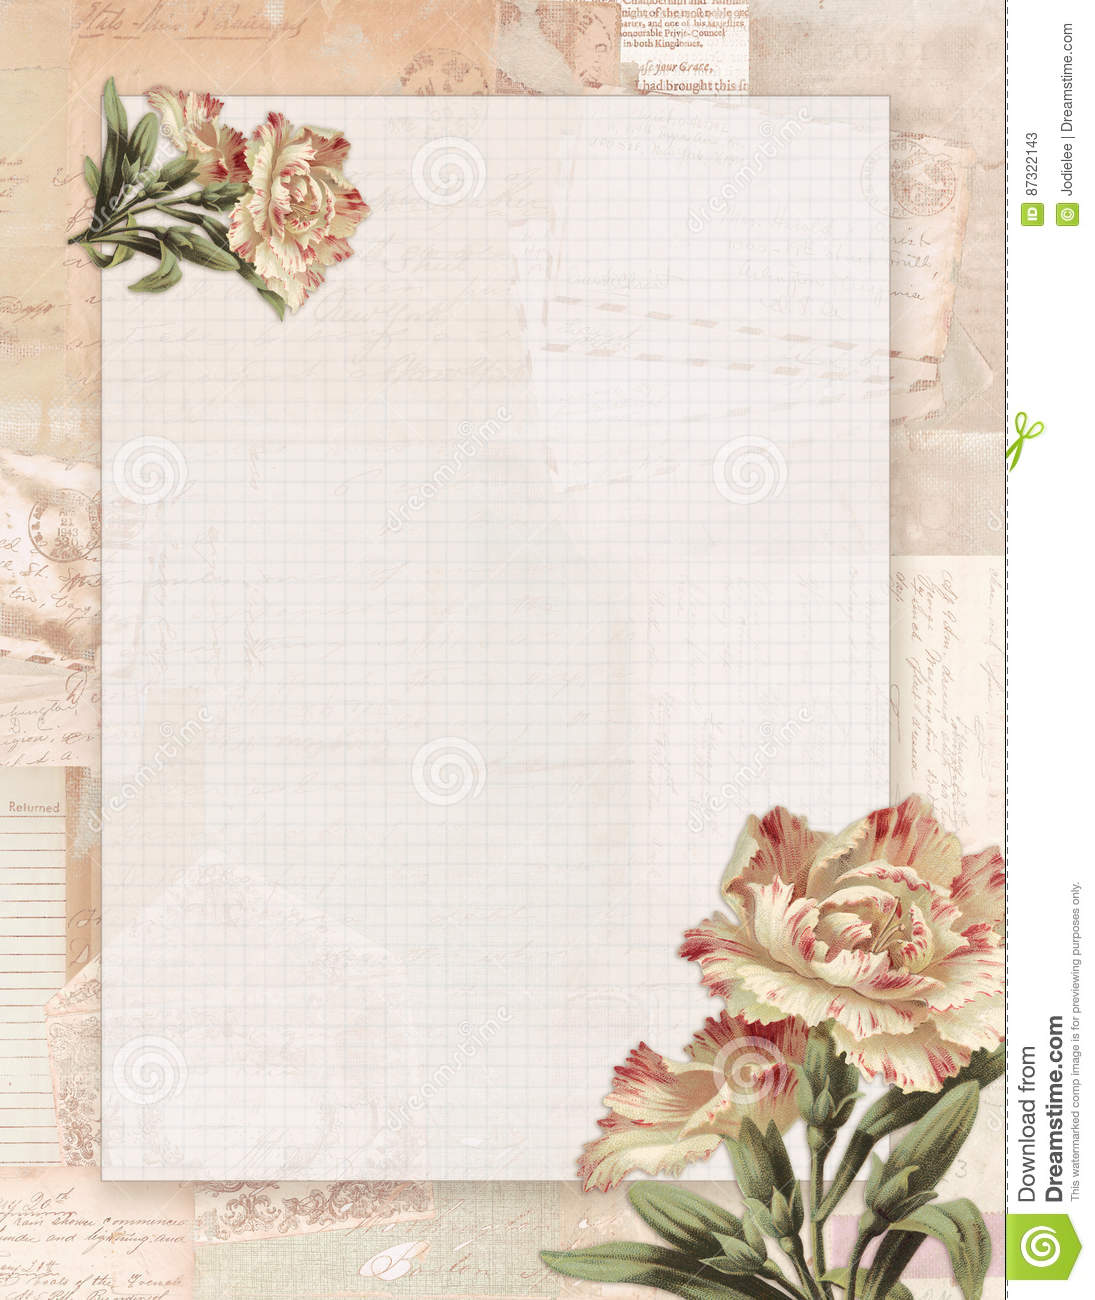 picture about Stationary Printable identify Printable Common Shabby Stylish Design Floral Rose Stationary